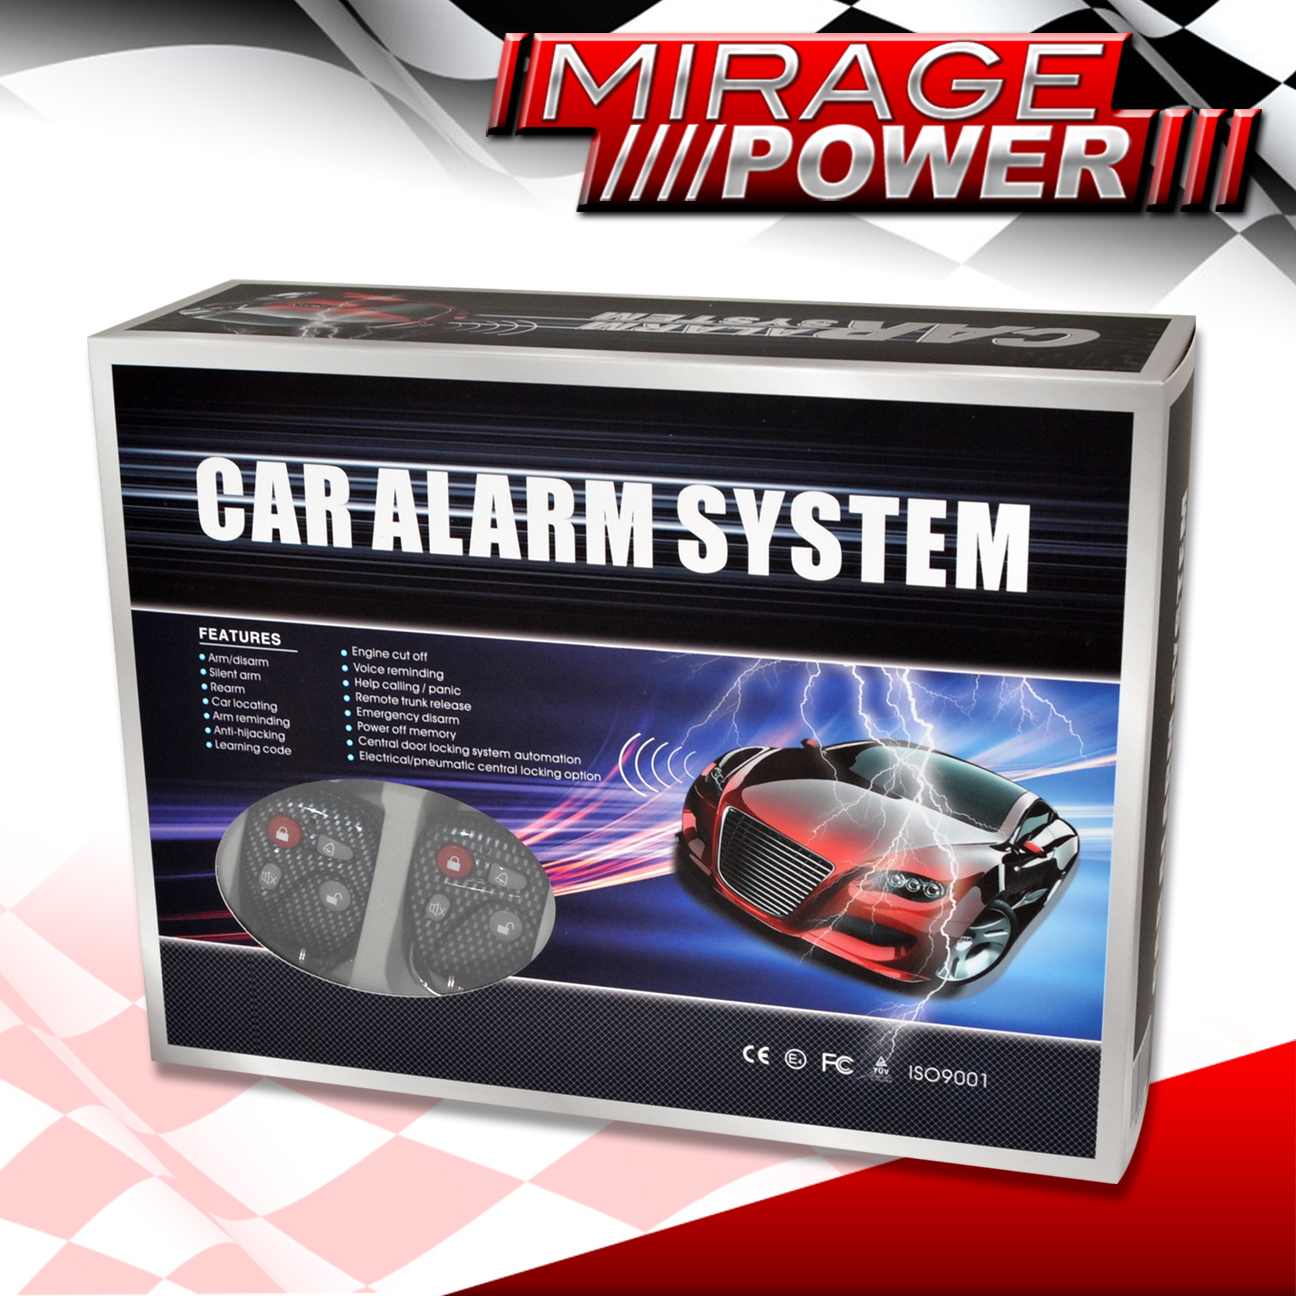 CIVIC CRX QUALITY    CAR       ALARM    SECURITY SYSTEM WITH CENTRAL DOOR LOCK CARBON KEYS   eBay